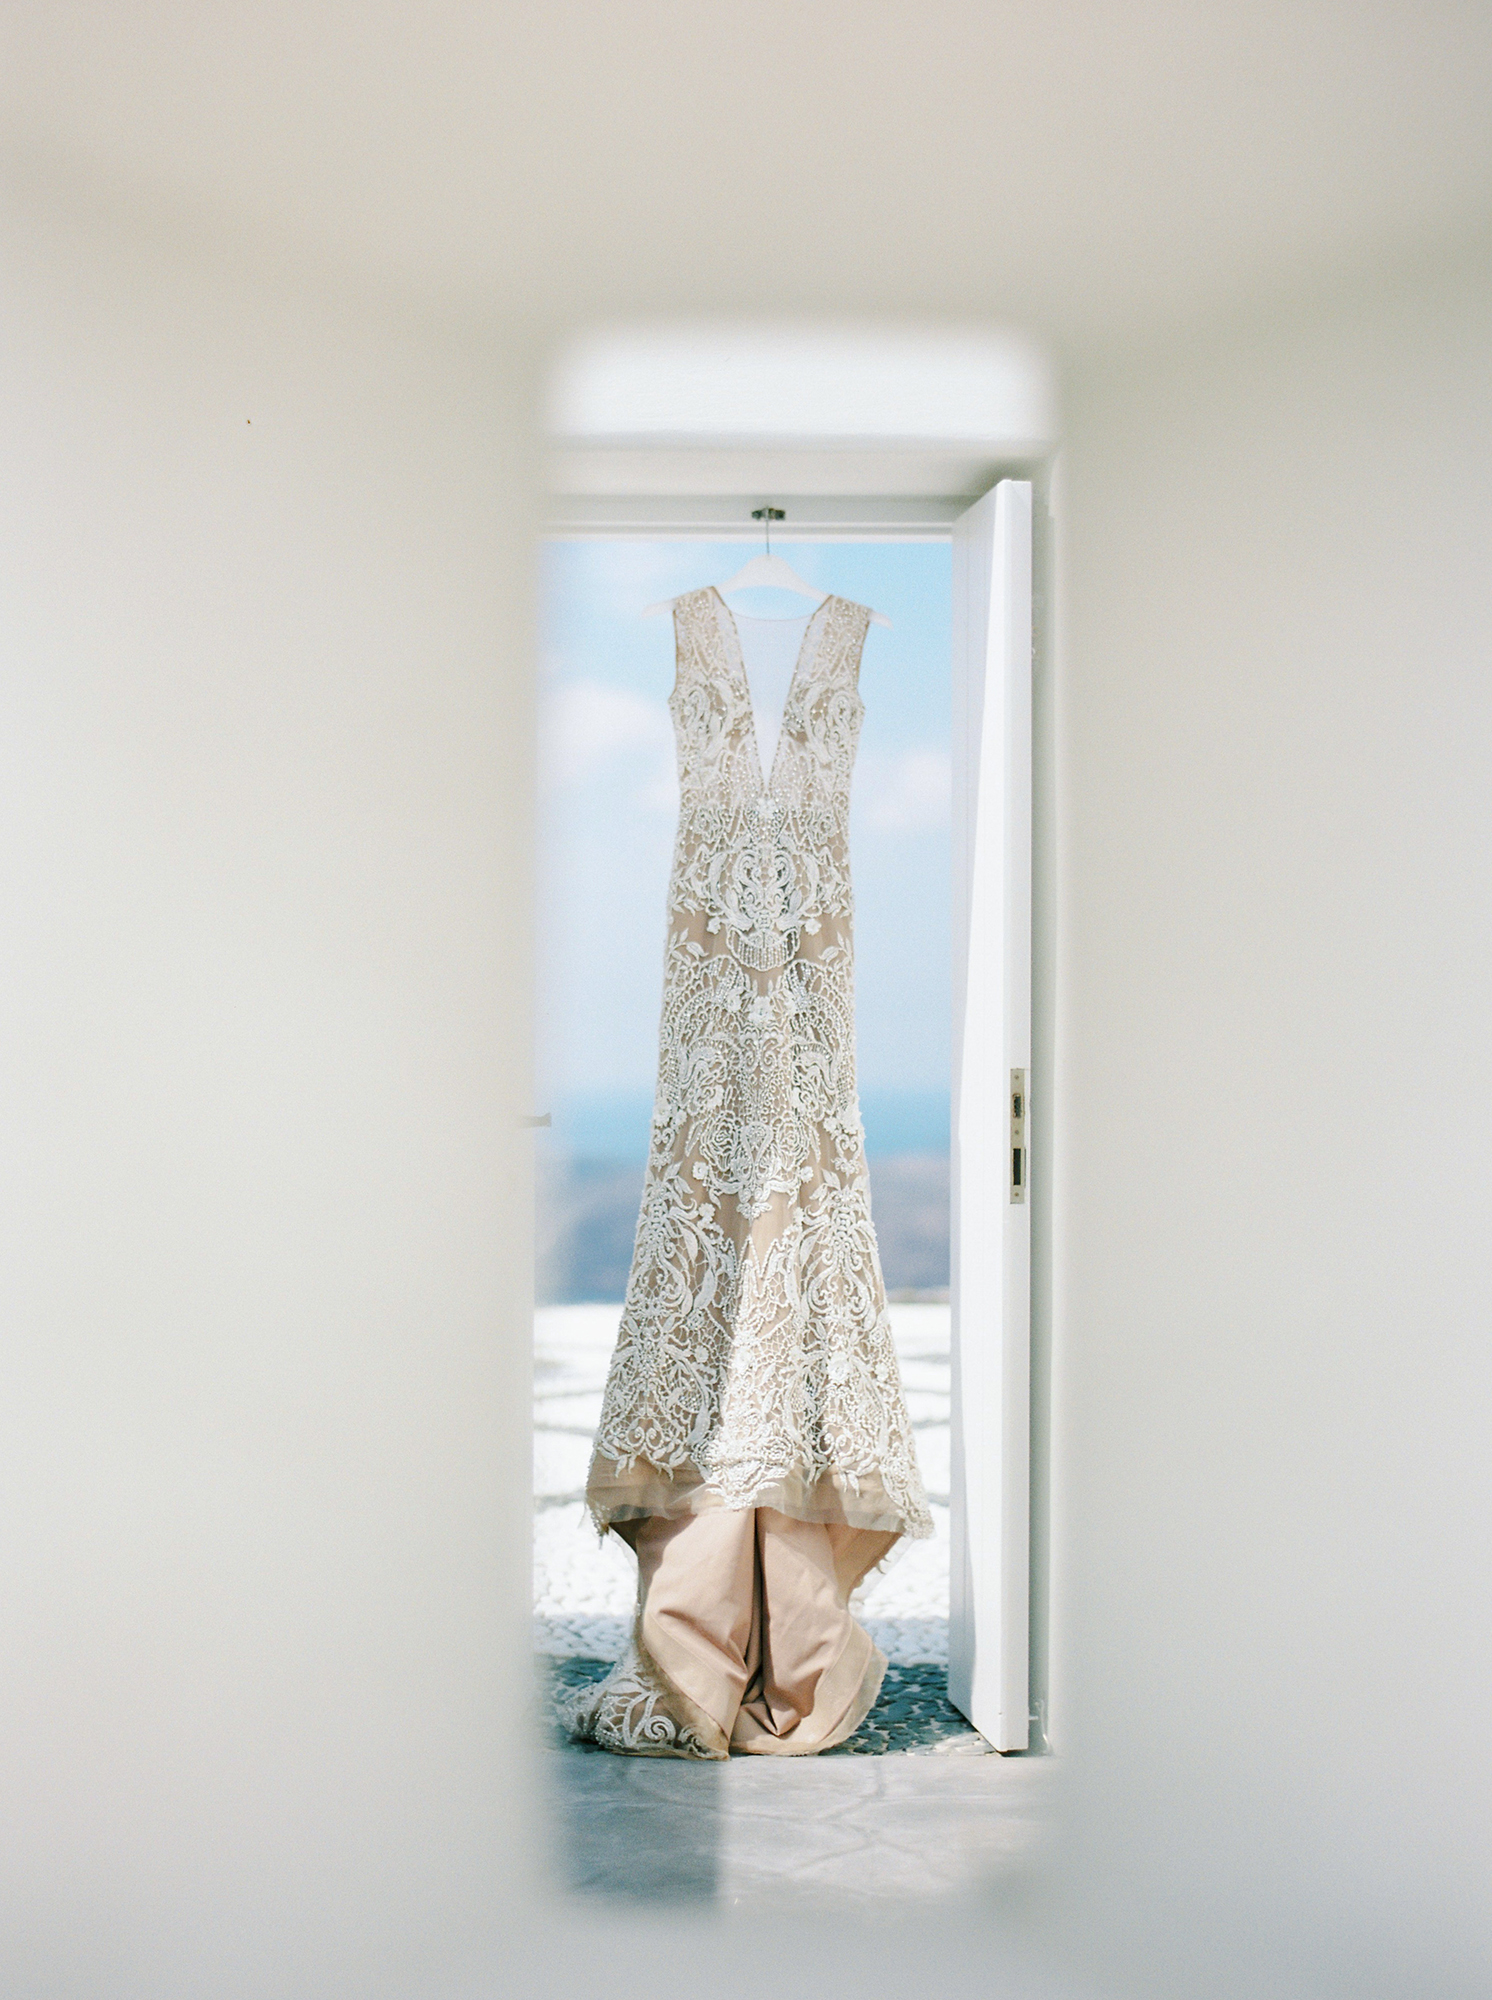 angie prayogo wedding bride wedding dress hanging in doorway